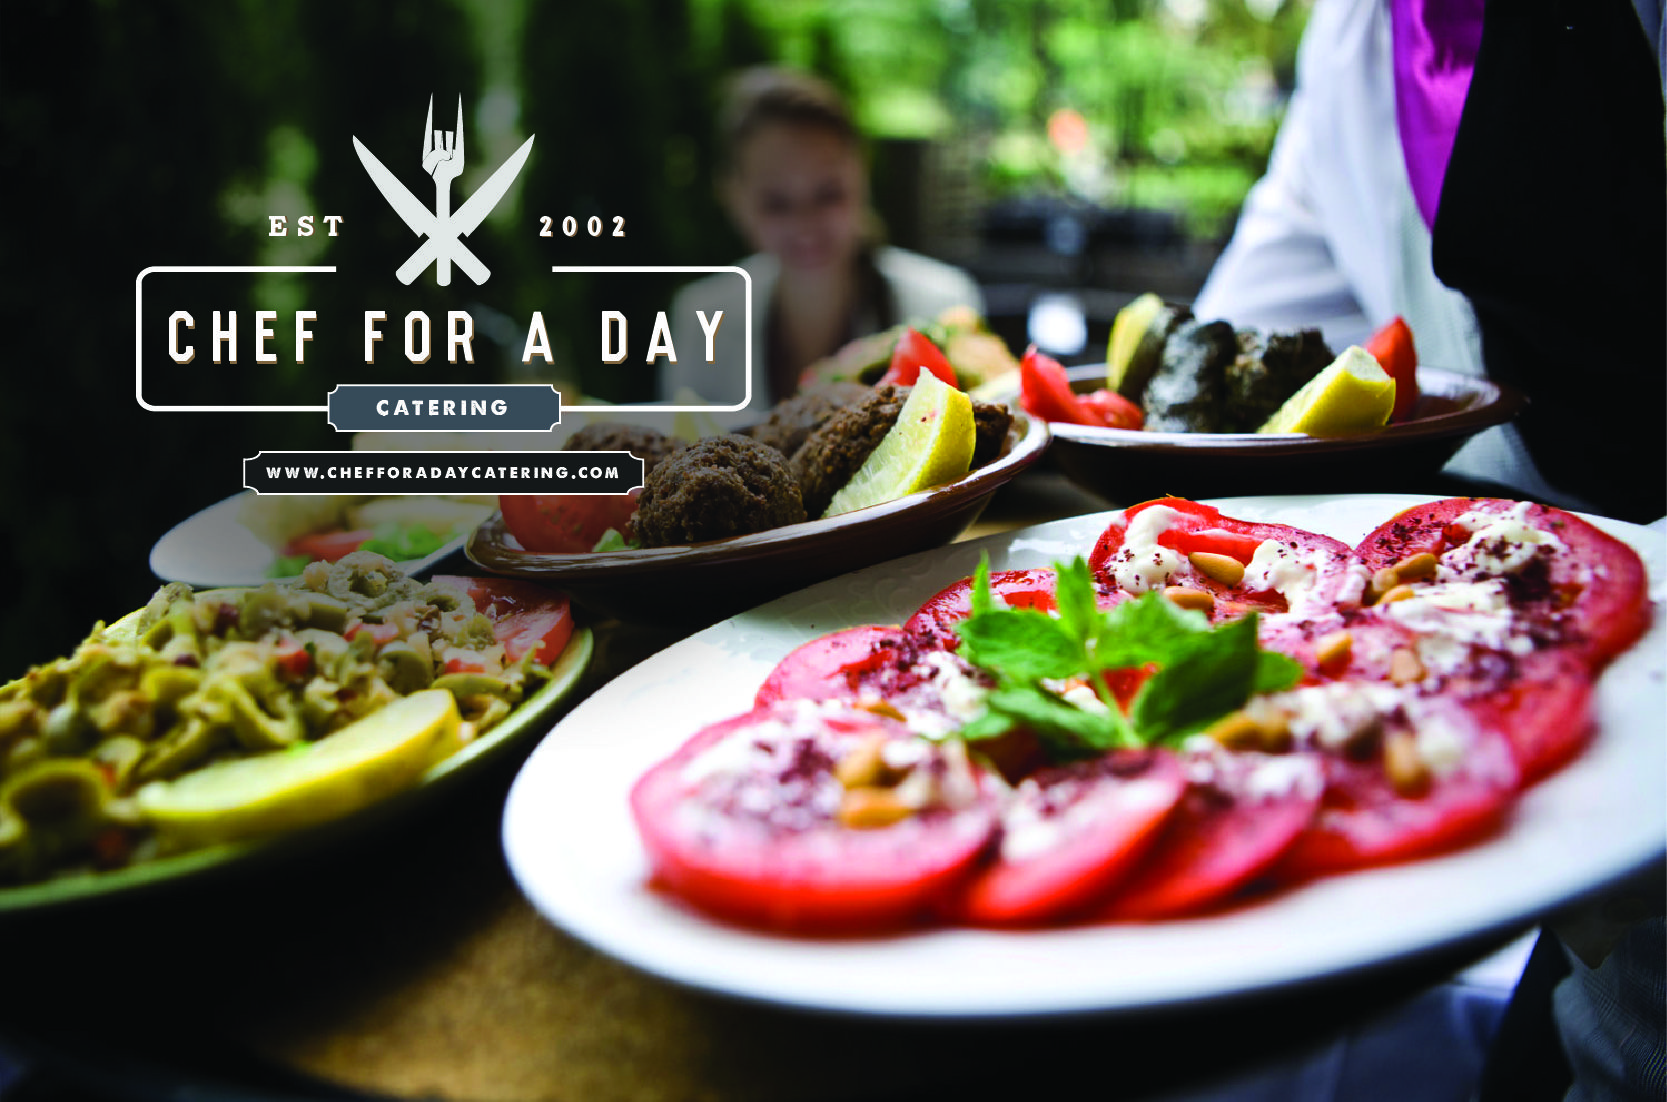 Chef for a Day Catering™ menus feature a variety of healthy, mouthwatering dishes prepared by trained chefs using the finest and freshest produce and ingredients.  Contact us at contact@chefforadaycatering.com for more details or call (412) 853-5916 to set an appointment.